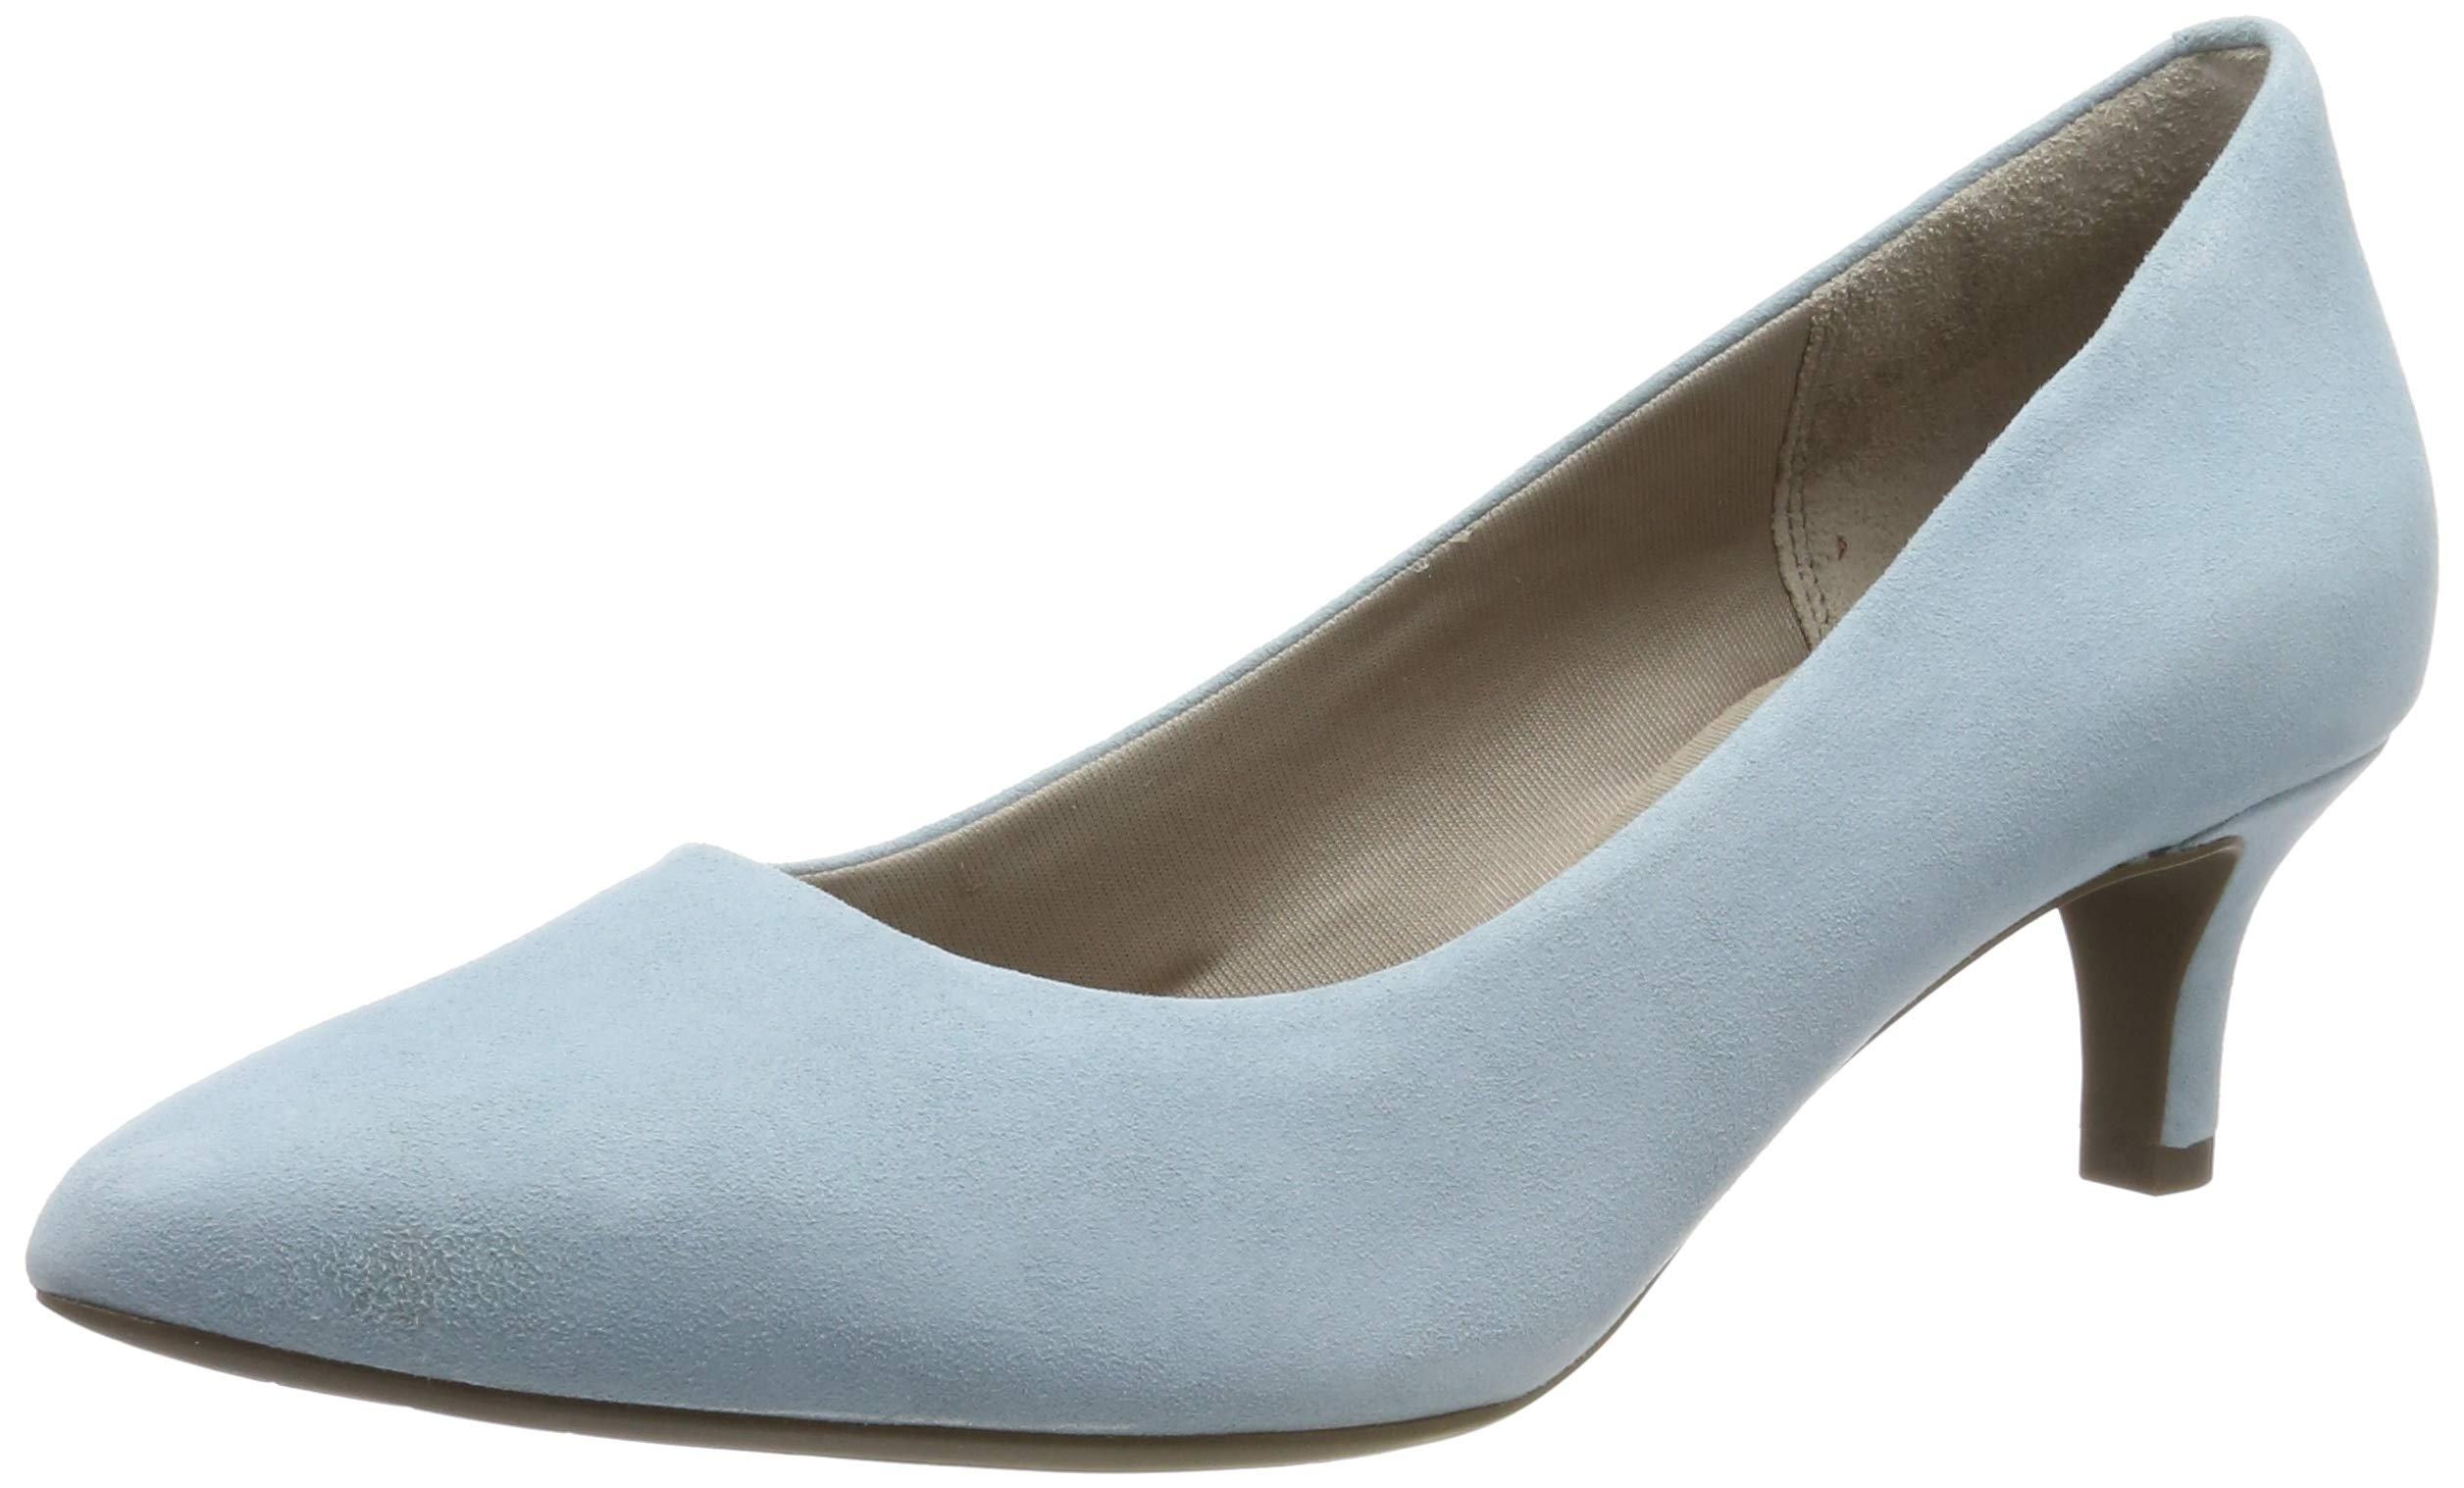 FemmeBleublue Sky Motion Bout Fermé Kaiya Total 00438 Eu Rockport PumpEscarpins F1cuT3lKJ